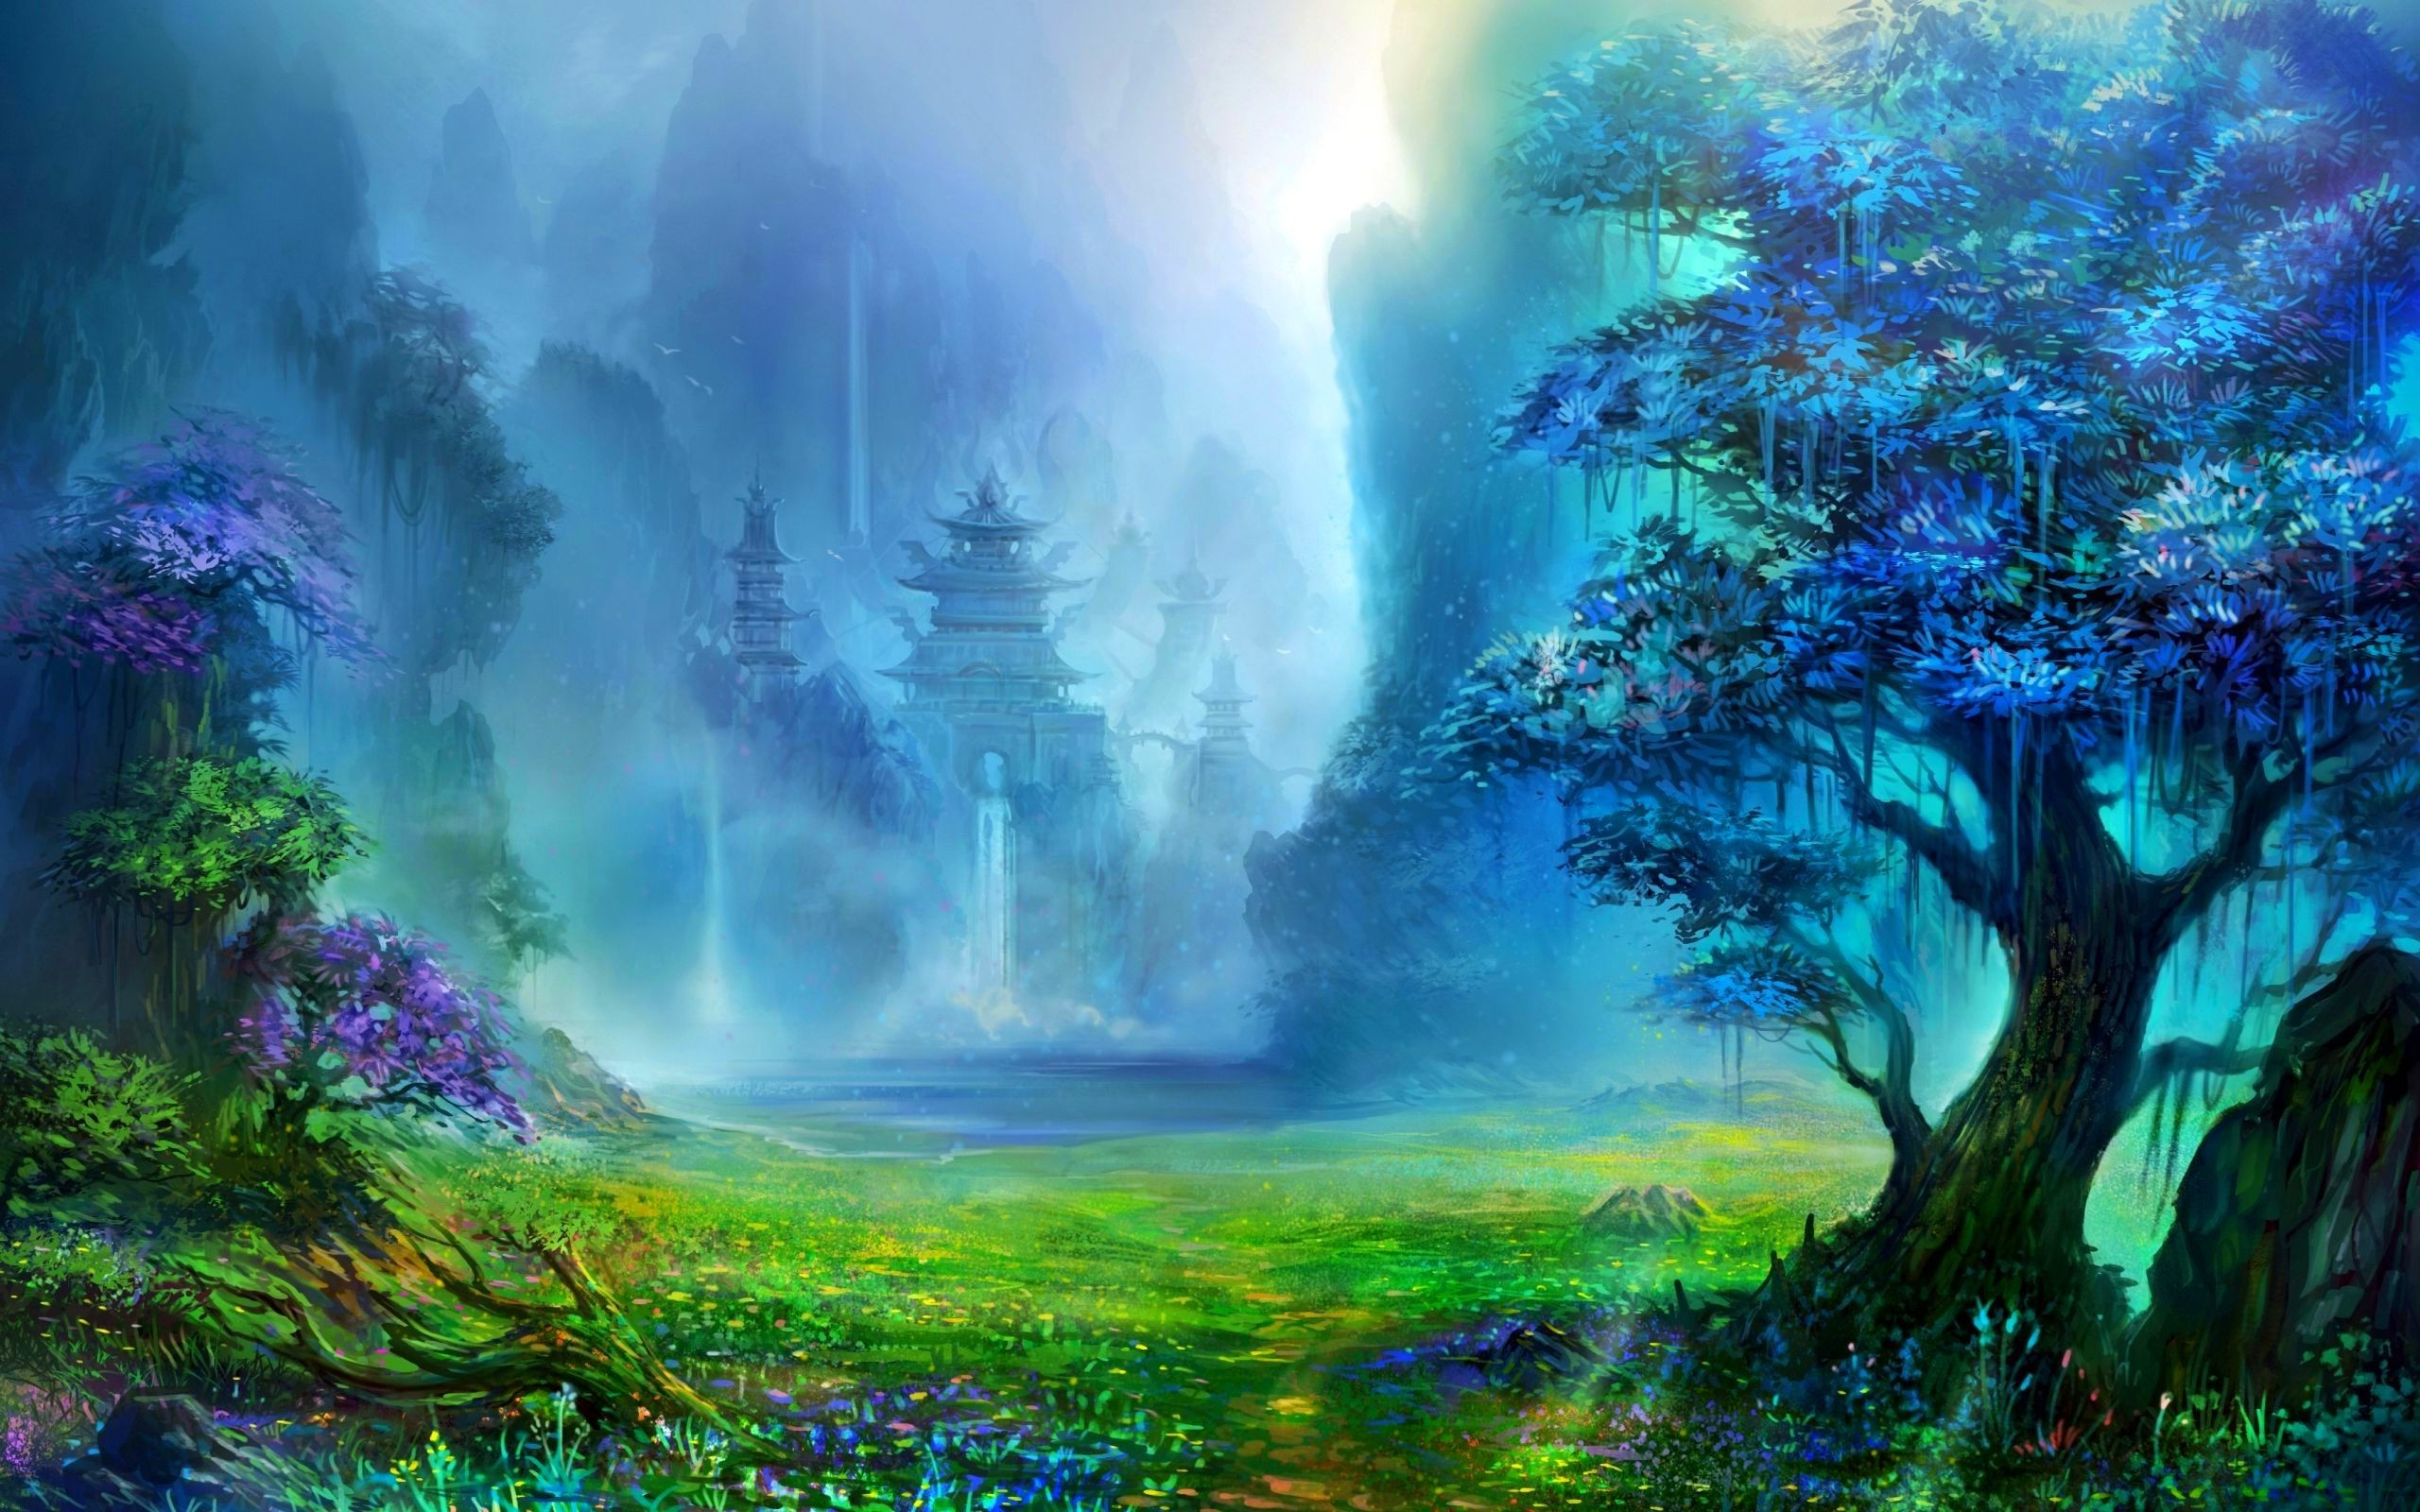 Fantasy nature wallpaper wallpapertag - 3d fantasy wallpaper ...